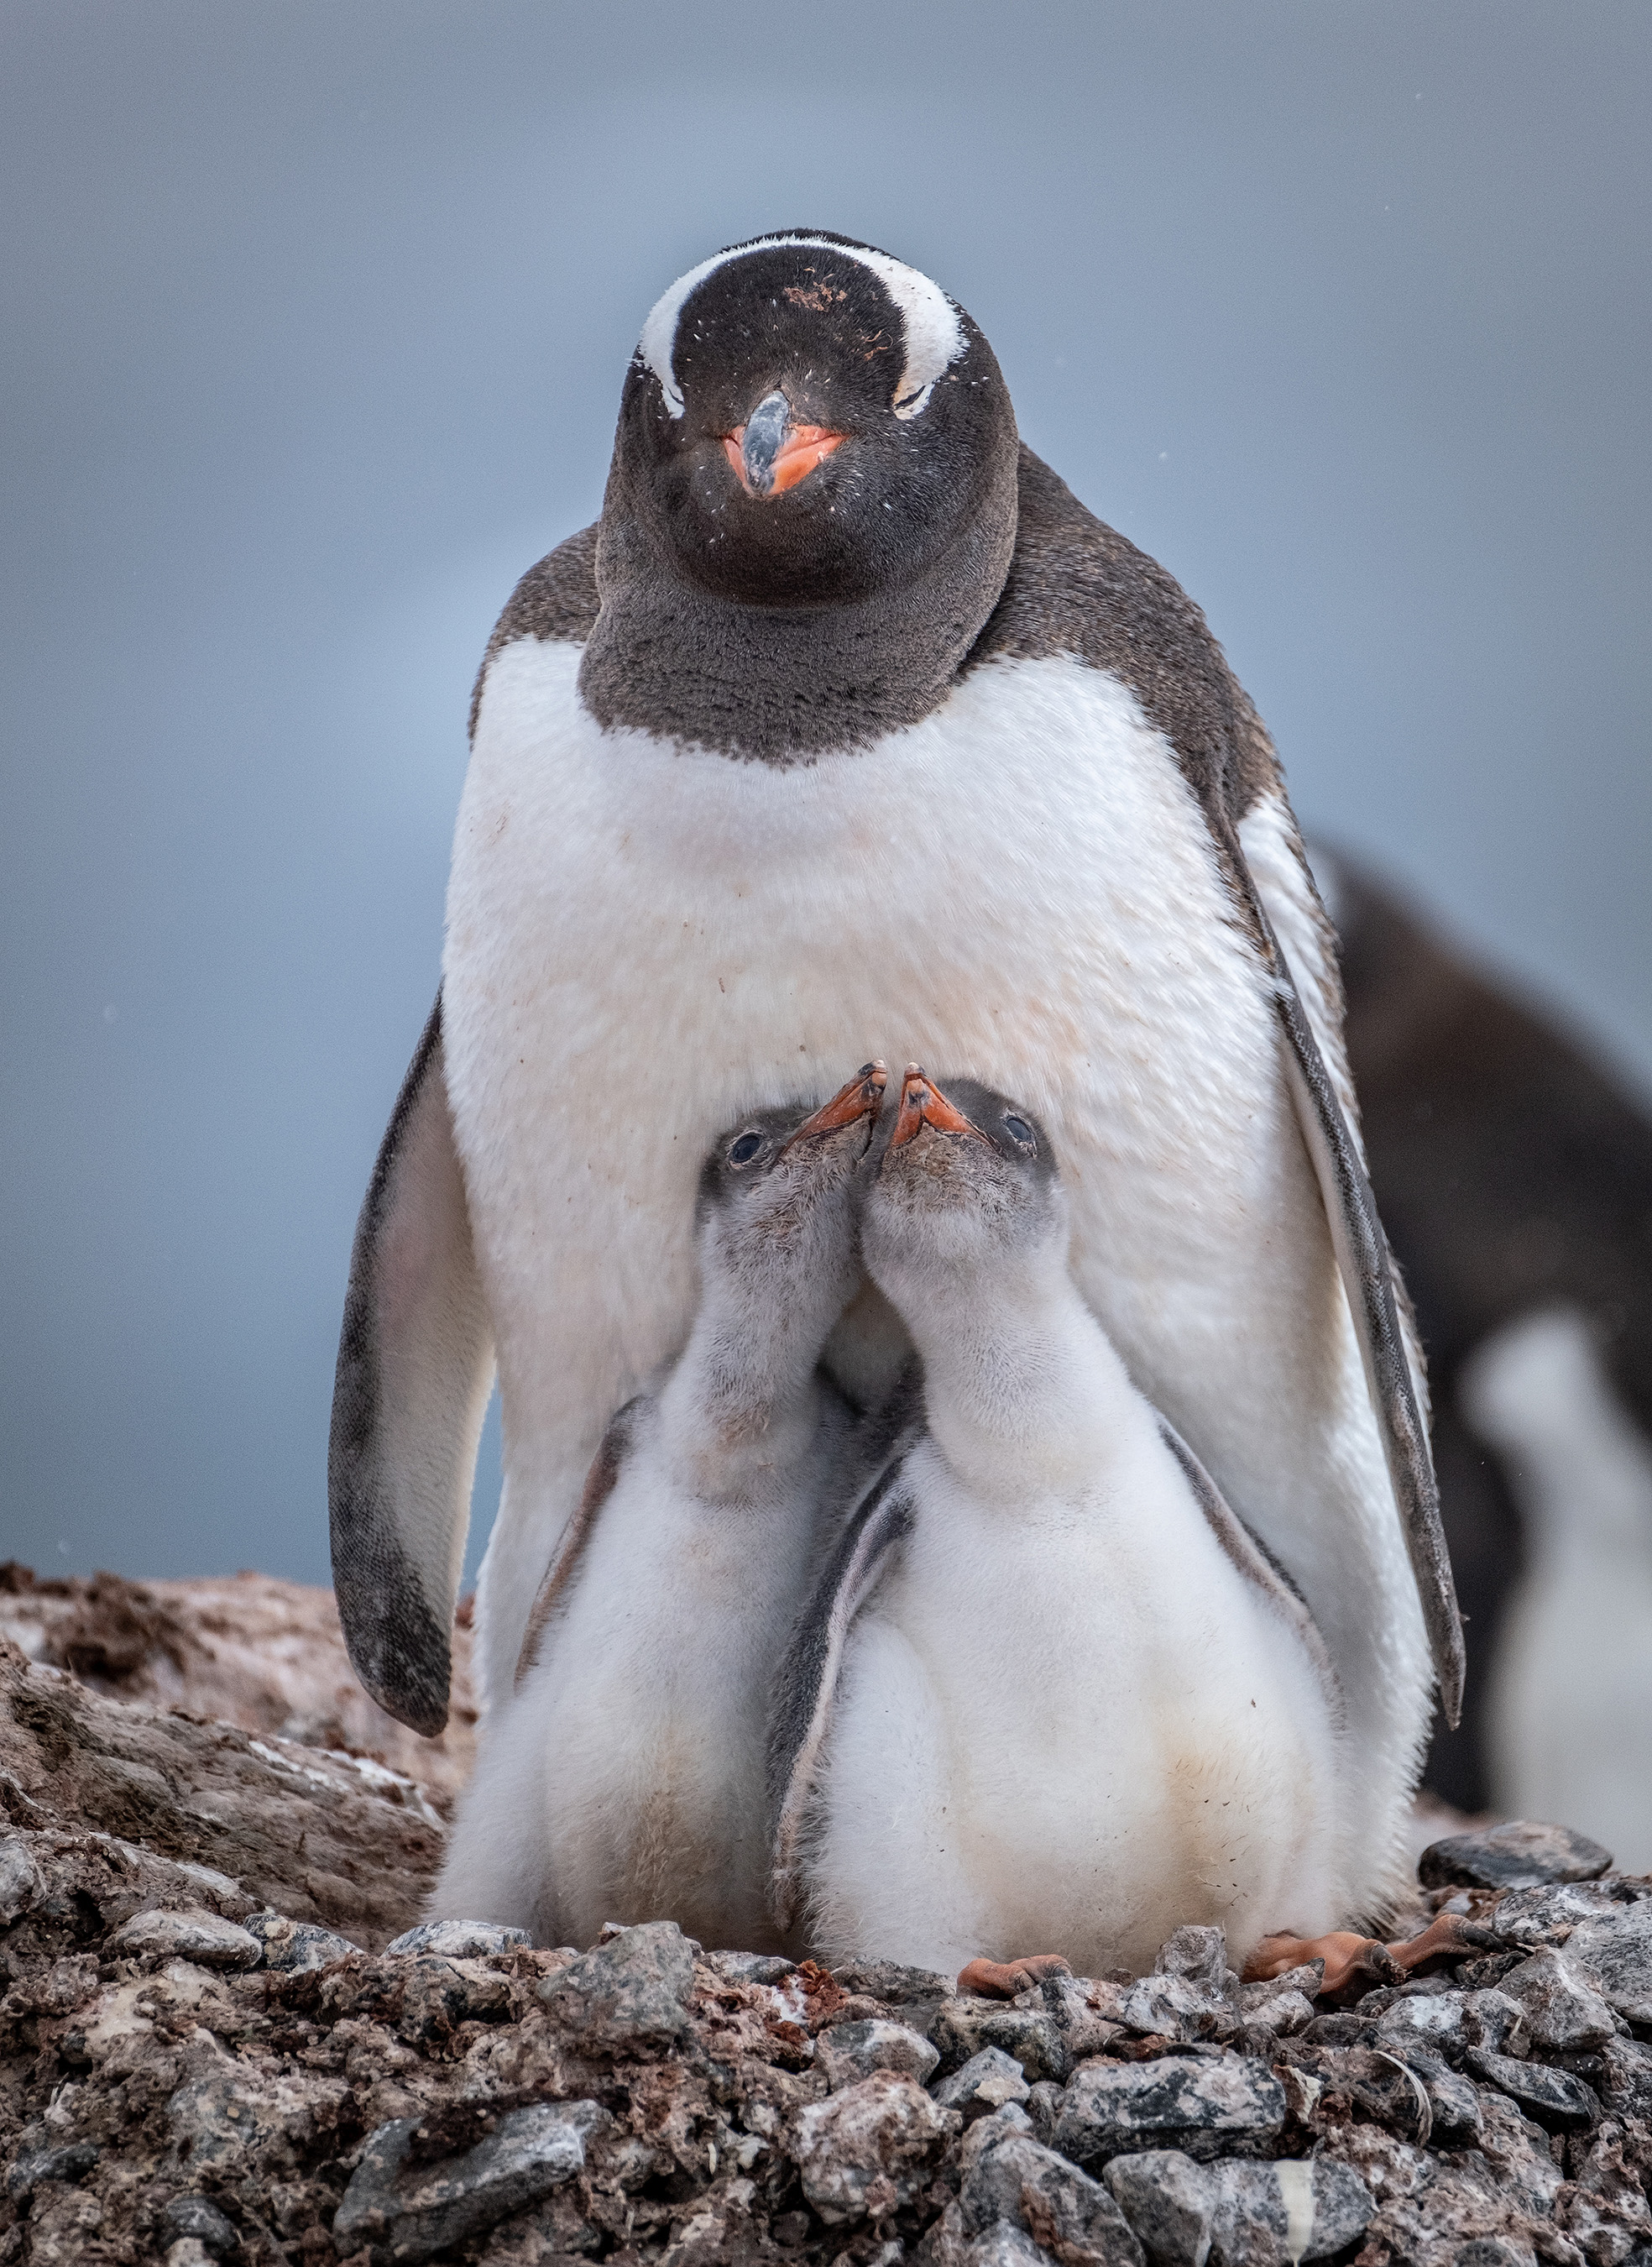 During their 10-day excursions, Antarctica21 travelers often spot magnificent sea birds, various species of whales and majestic icebergs - all prior to a memorable shore visit to a penguin colony